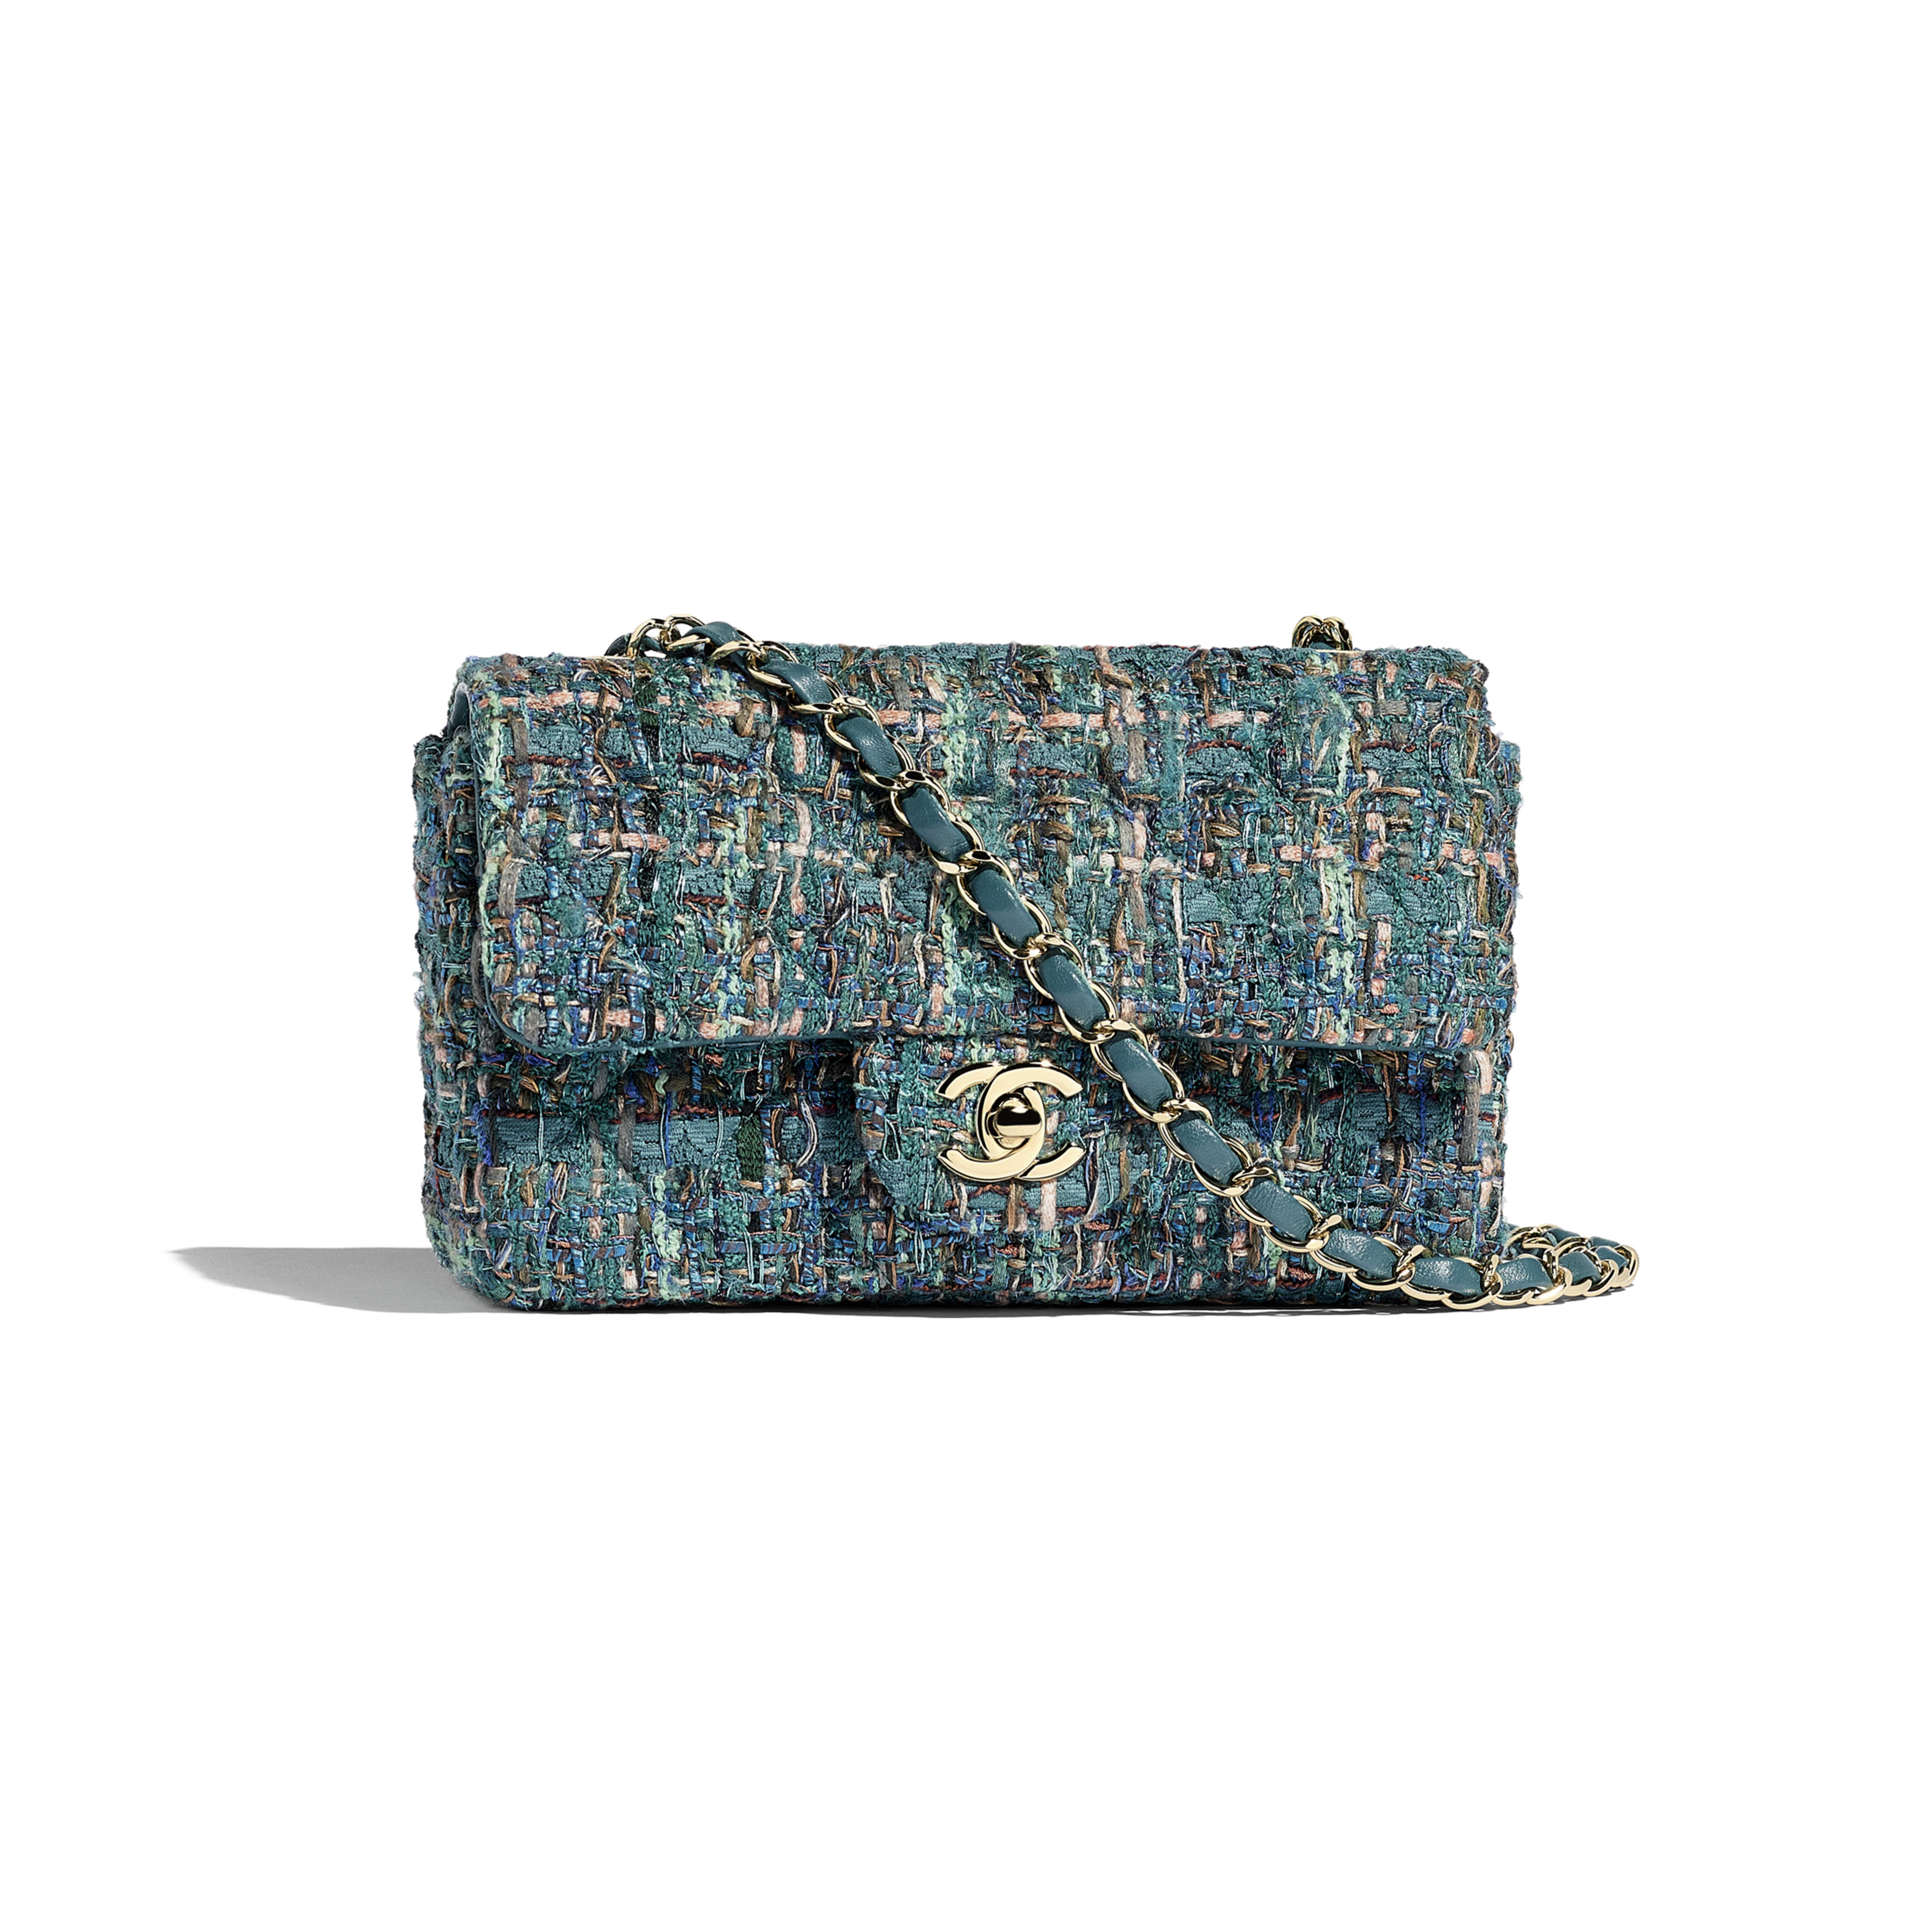 Mini Flap Bag - Turquoise - Tweed & Gold-Tone Metal - Default view - see full sized version